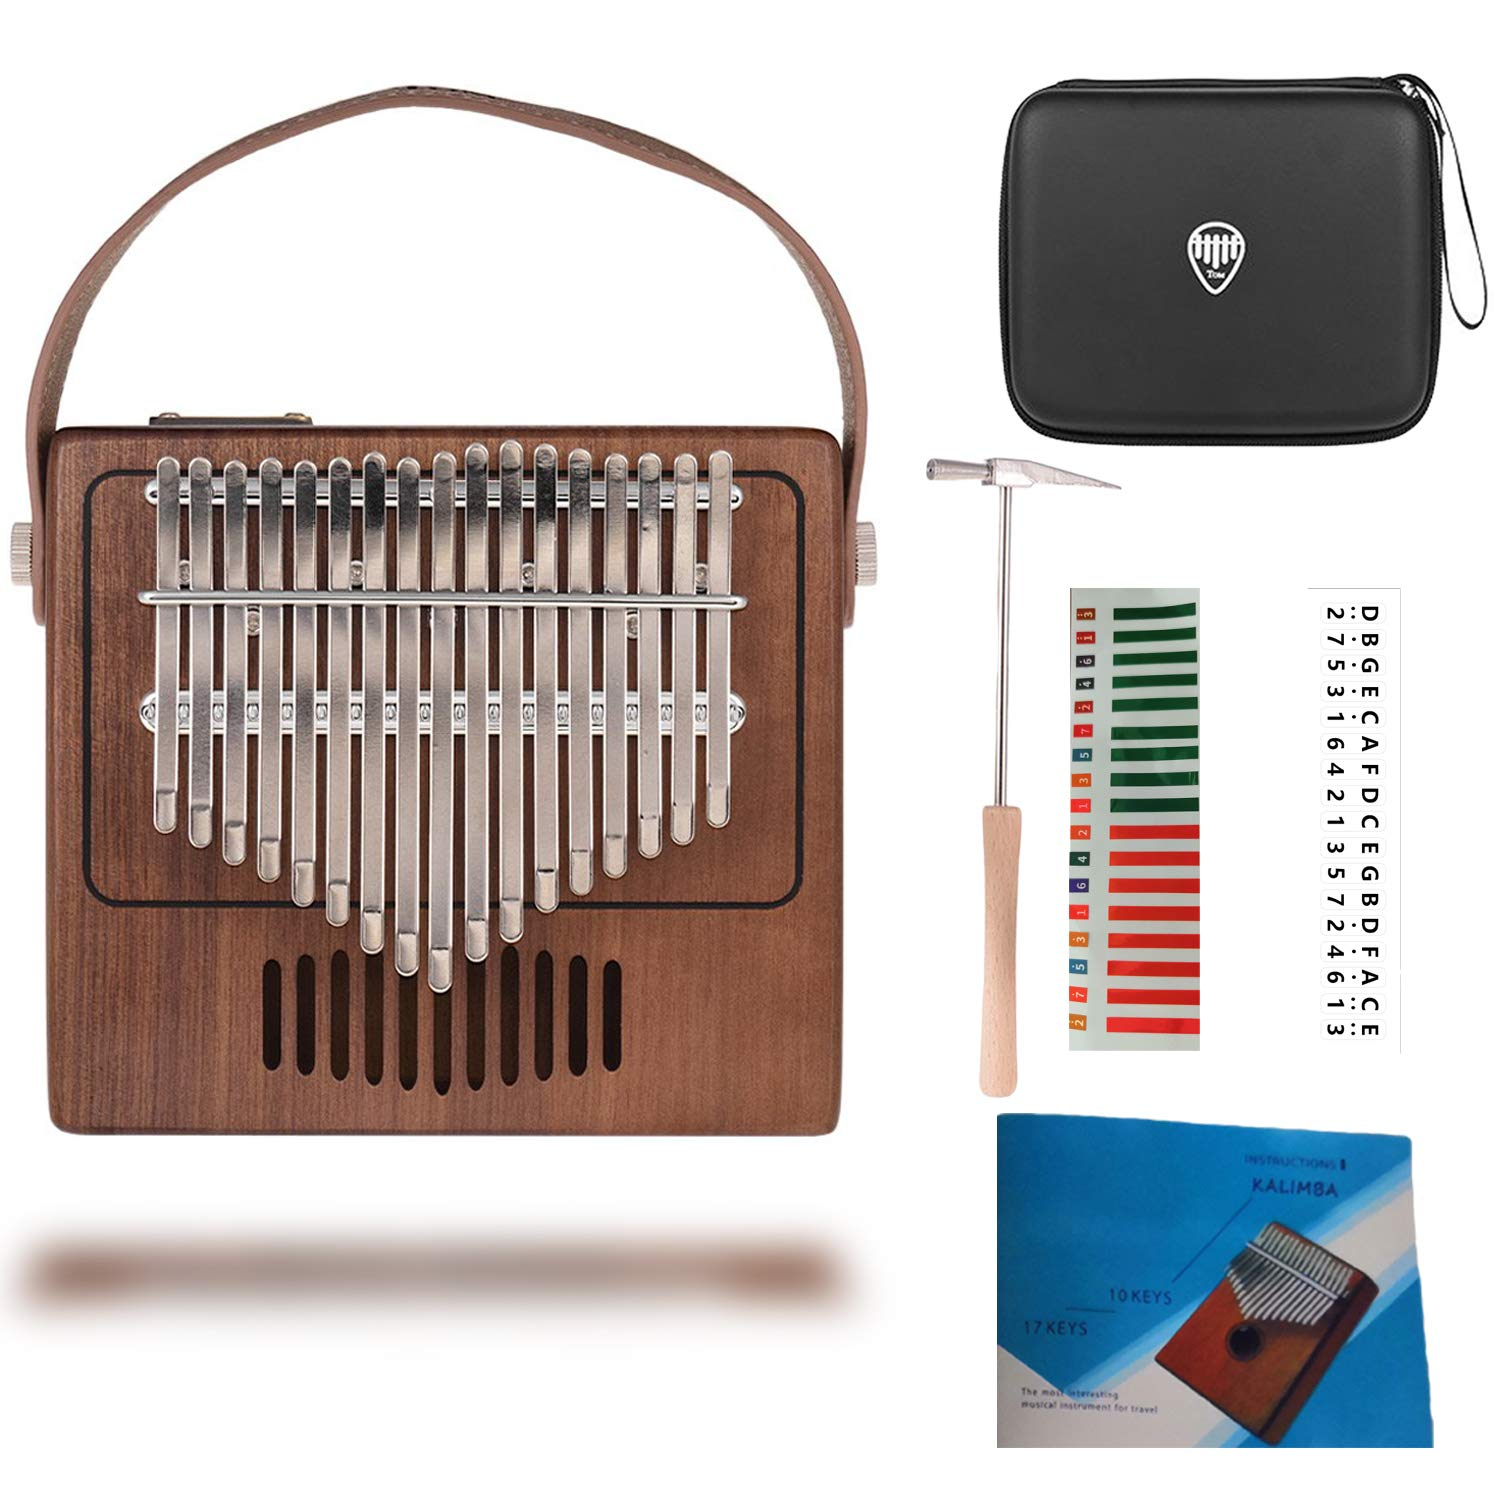 TOM Kalimba, 17 Key Finger Piano with EVA High-performance protective Case, Tune Hammer And Study Instruction 17 Tone Thumb Mbira for Kids Adult Beginners Professionals by TOM (Image #1)